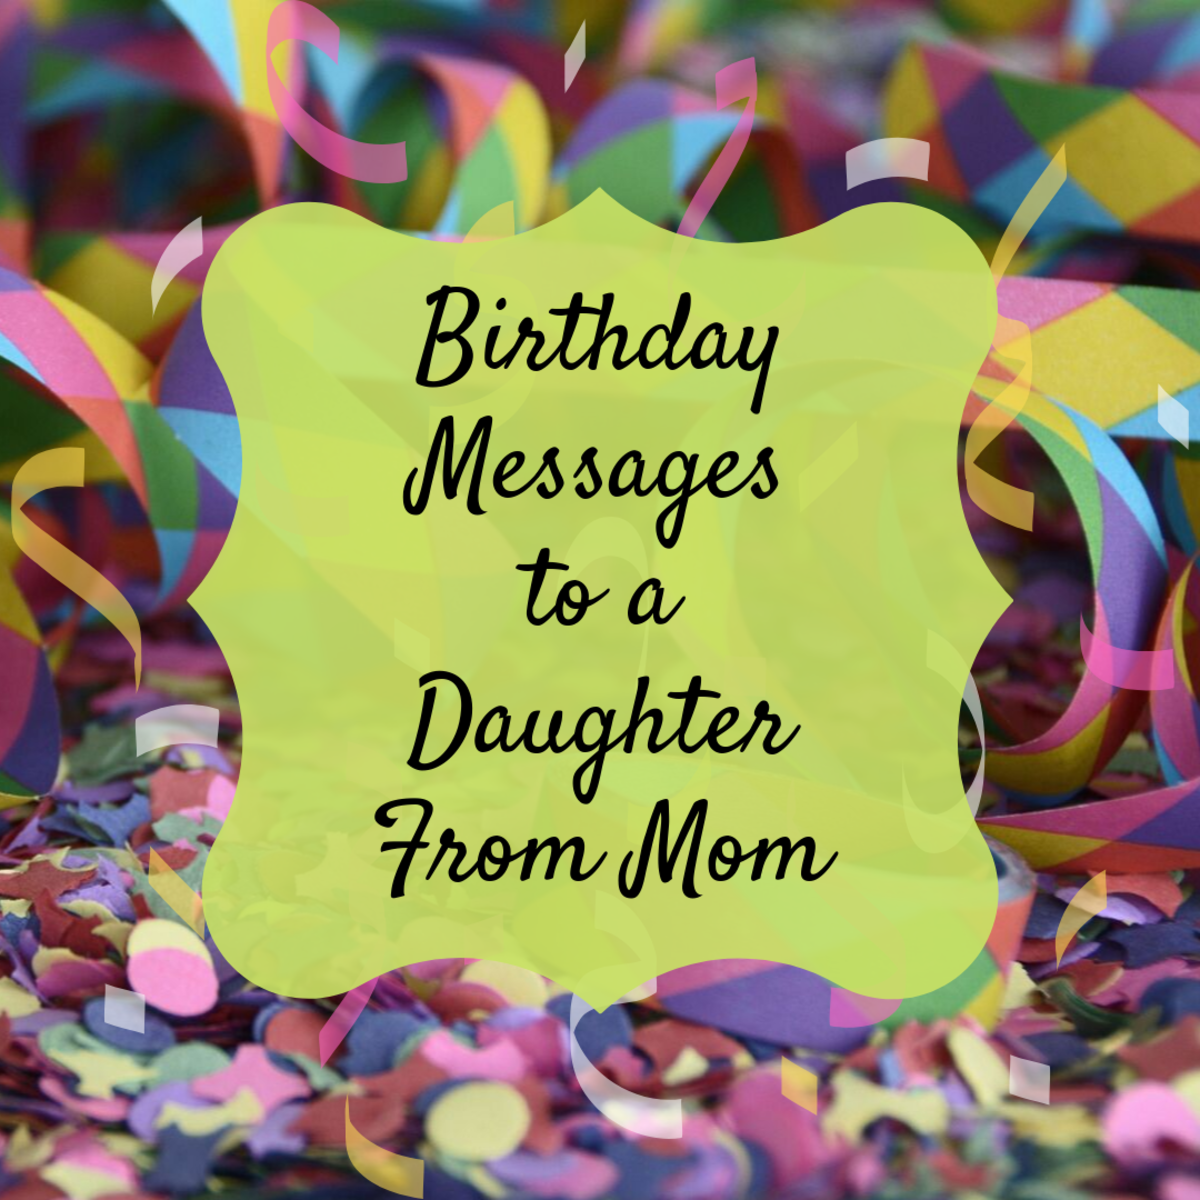 Birthday Wishes Texts And Quotes For A Daughter From Mom Holidappy Celebrations